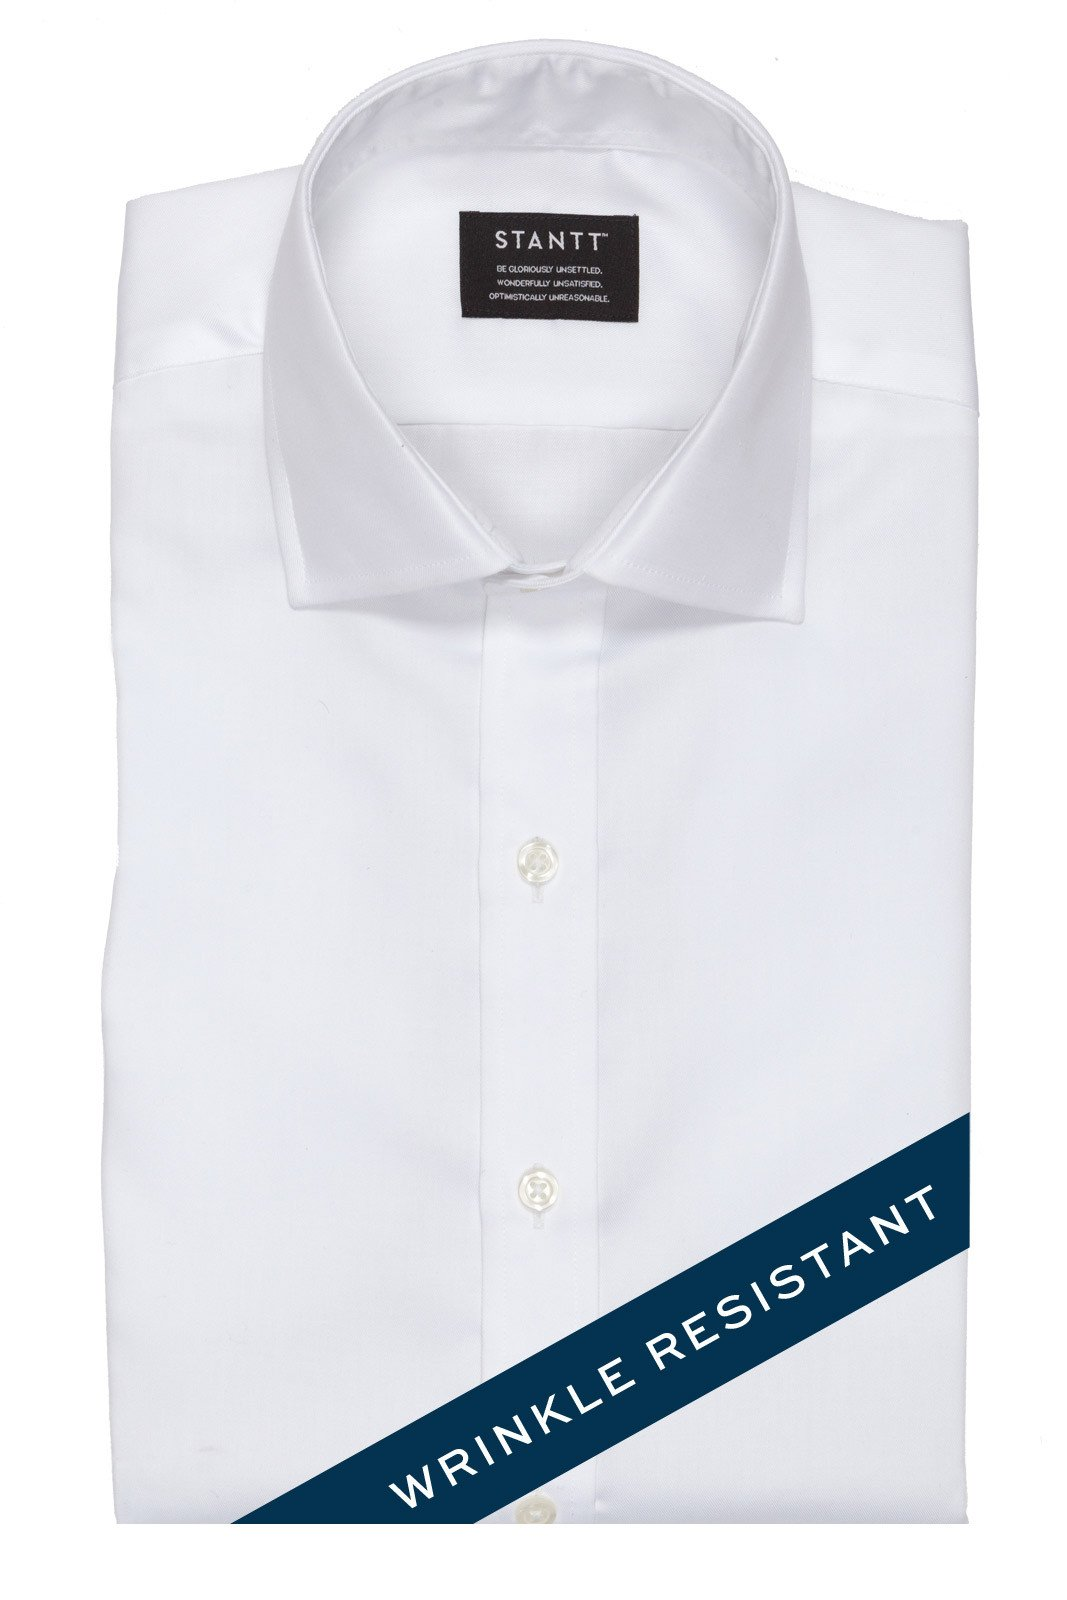 Wrinkle-Resistant White Twill: Modified-Spread Collar, French Cuff